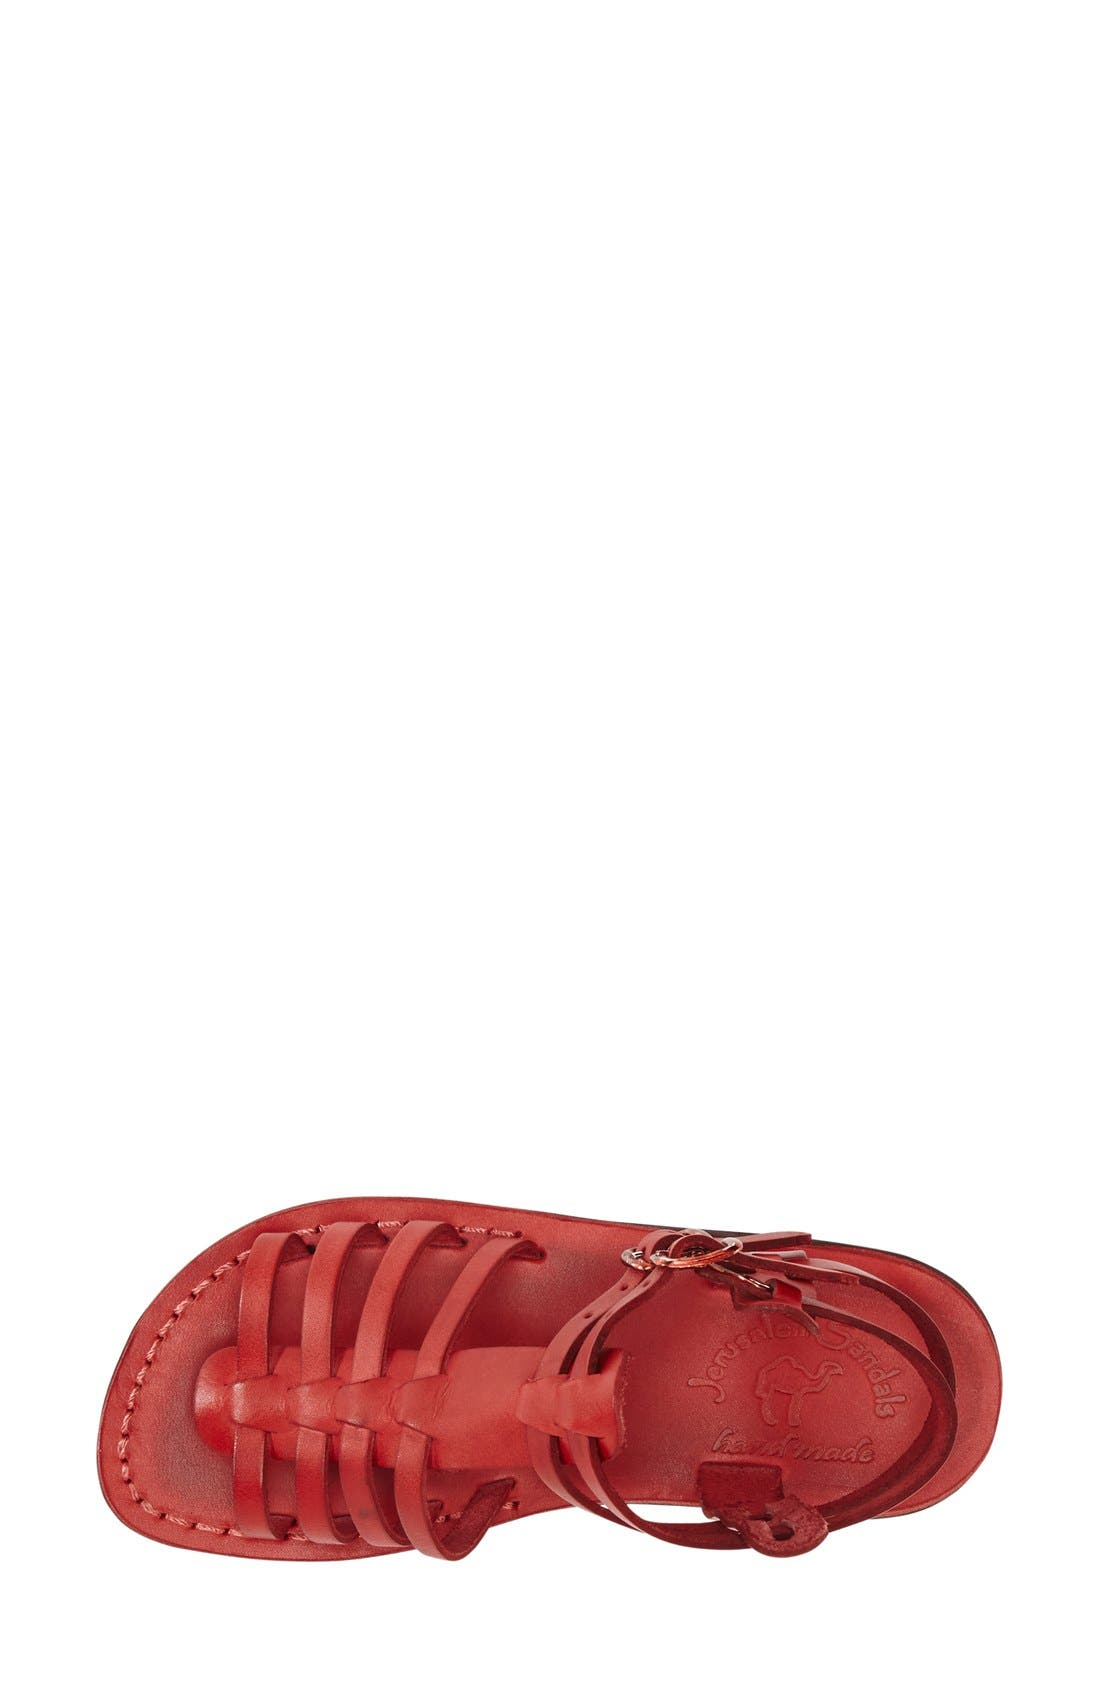 'Leah' Sandal,                             Alternate thumbnail 3, color,                             Red Leather